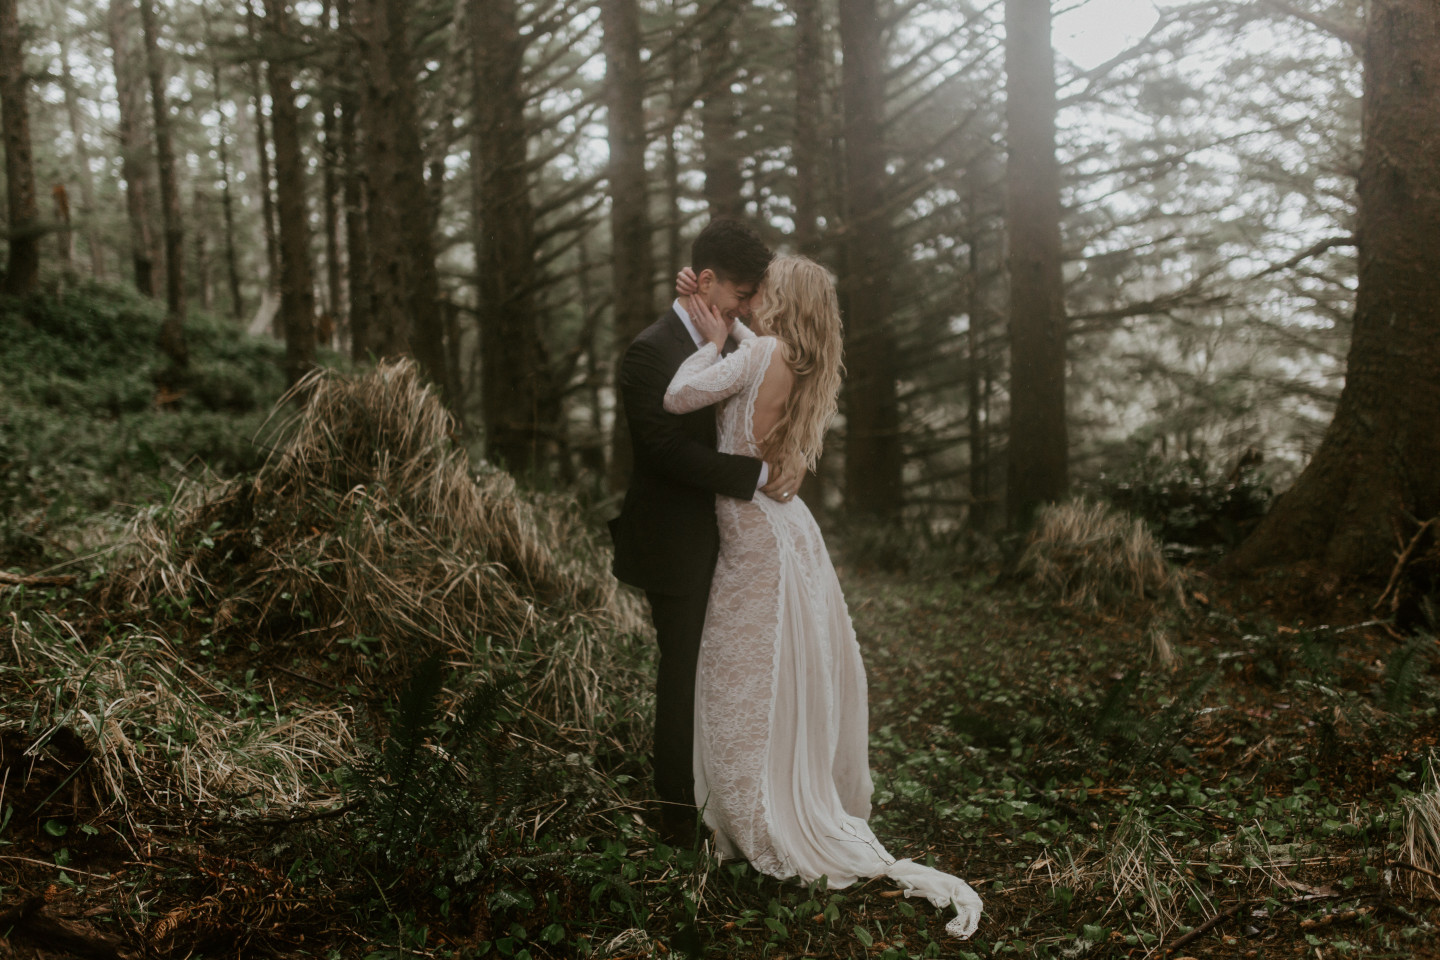 Hannah and Grant in the trees of Cannon Beach, Oregon. Wedding photography in Portland Oregon by Sienna Plus Josh.